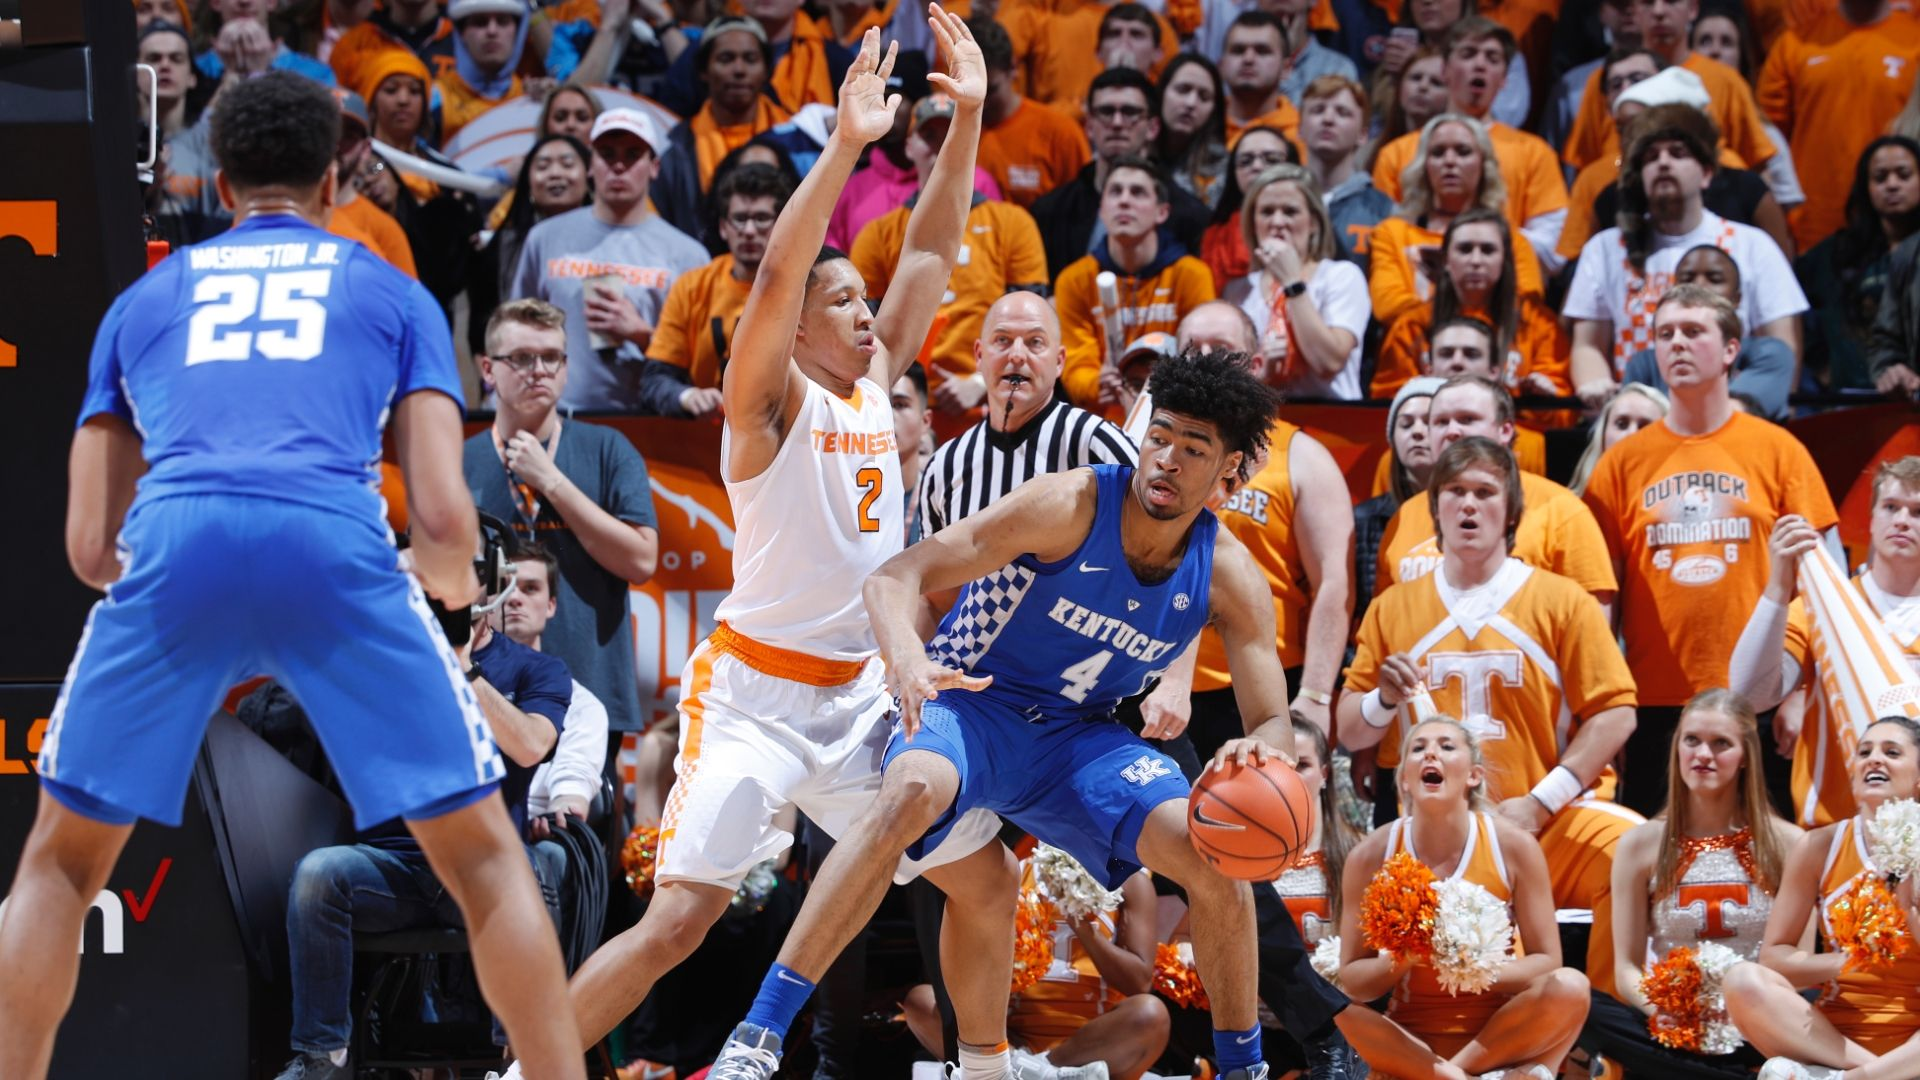 Kentucky Wildcats Basketball 2018 Sec Matchups Revealed: Tennessee Outlasts Kentucky In Fiery Matchup